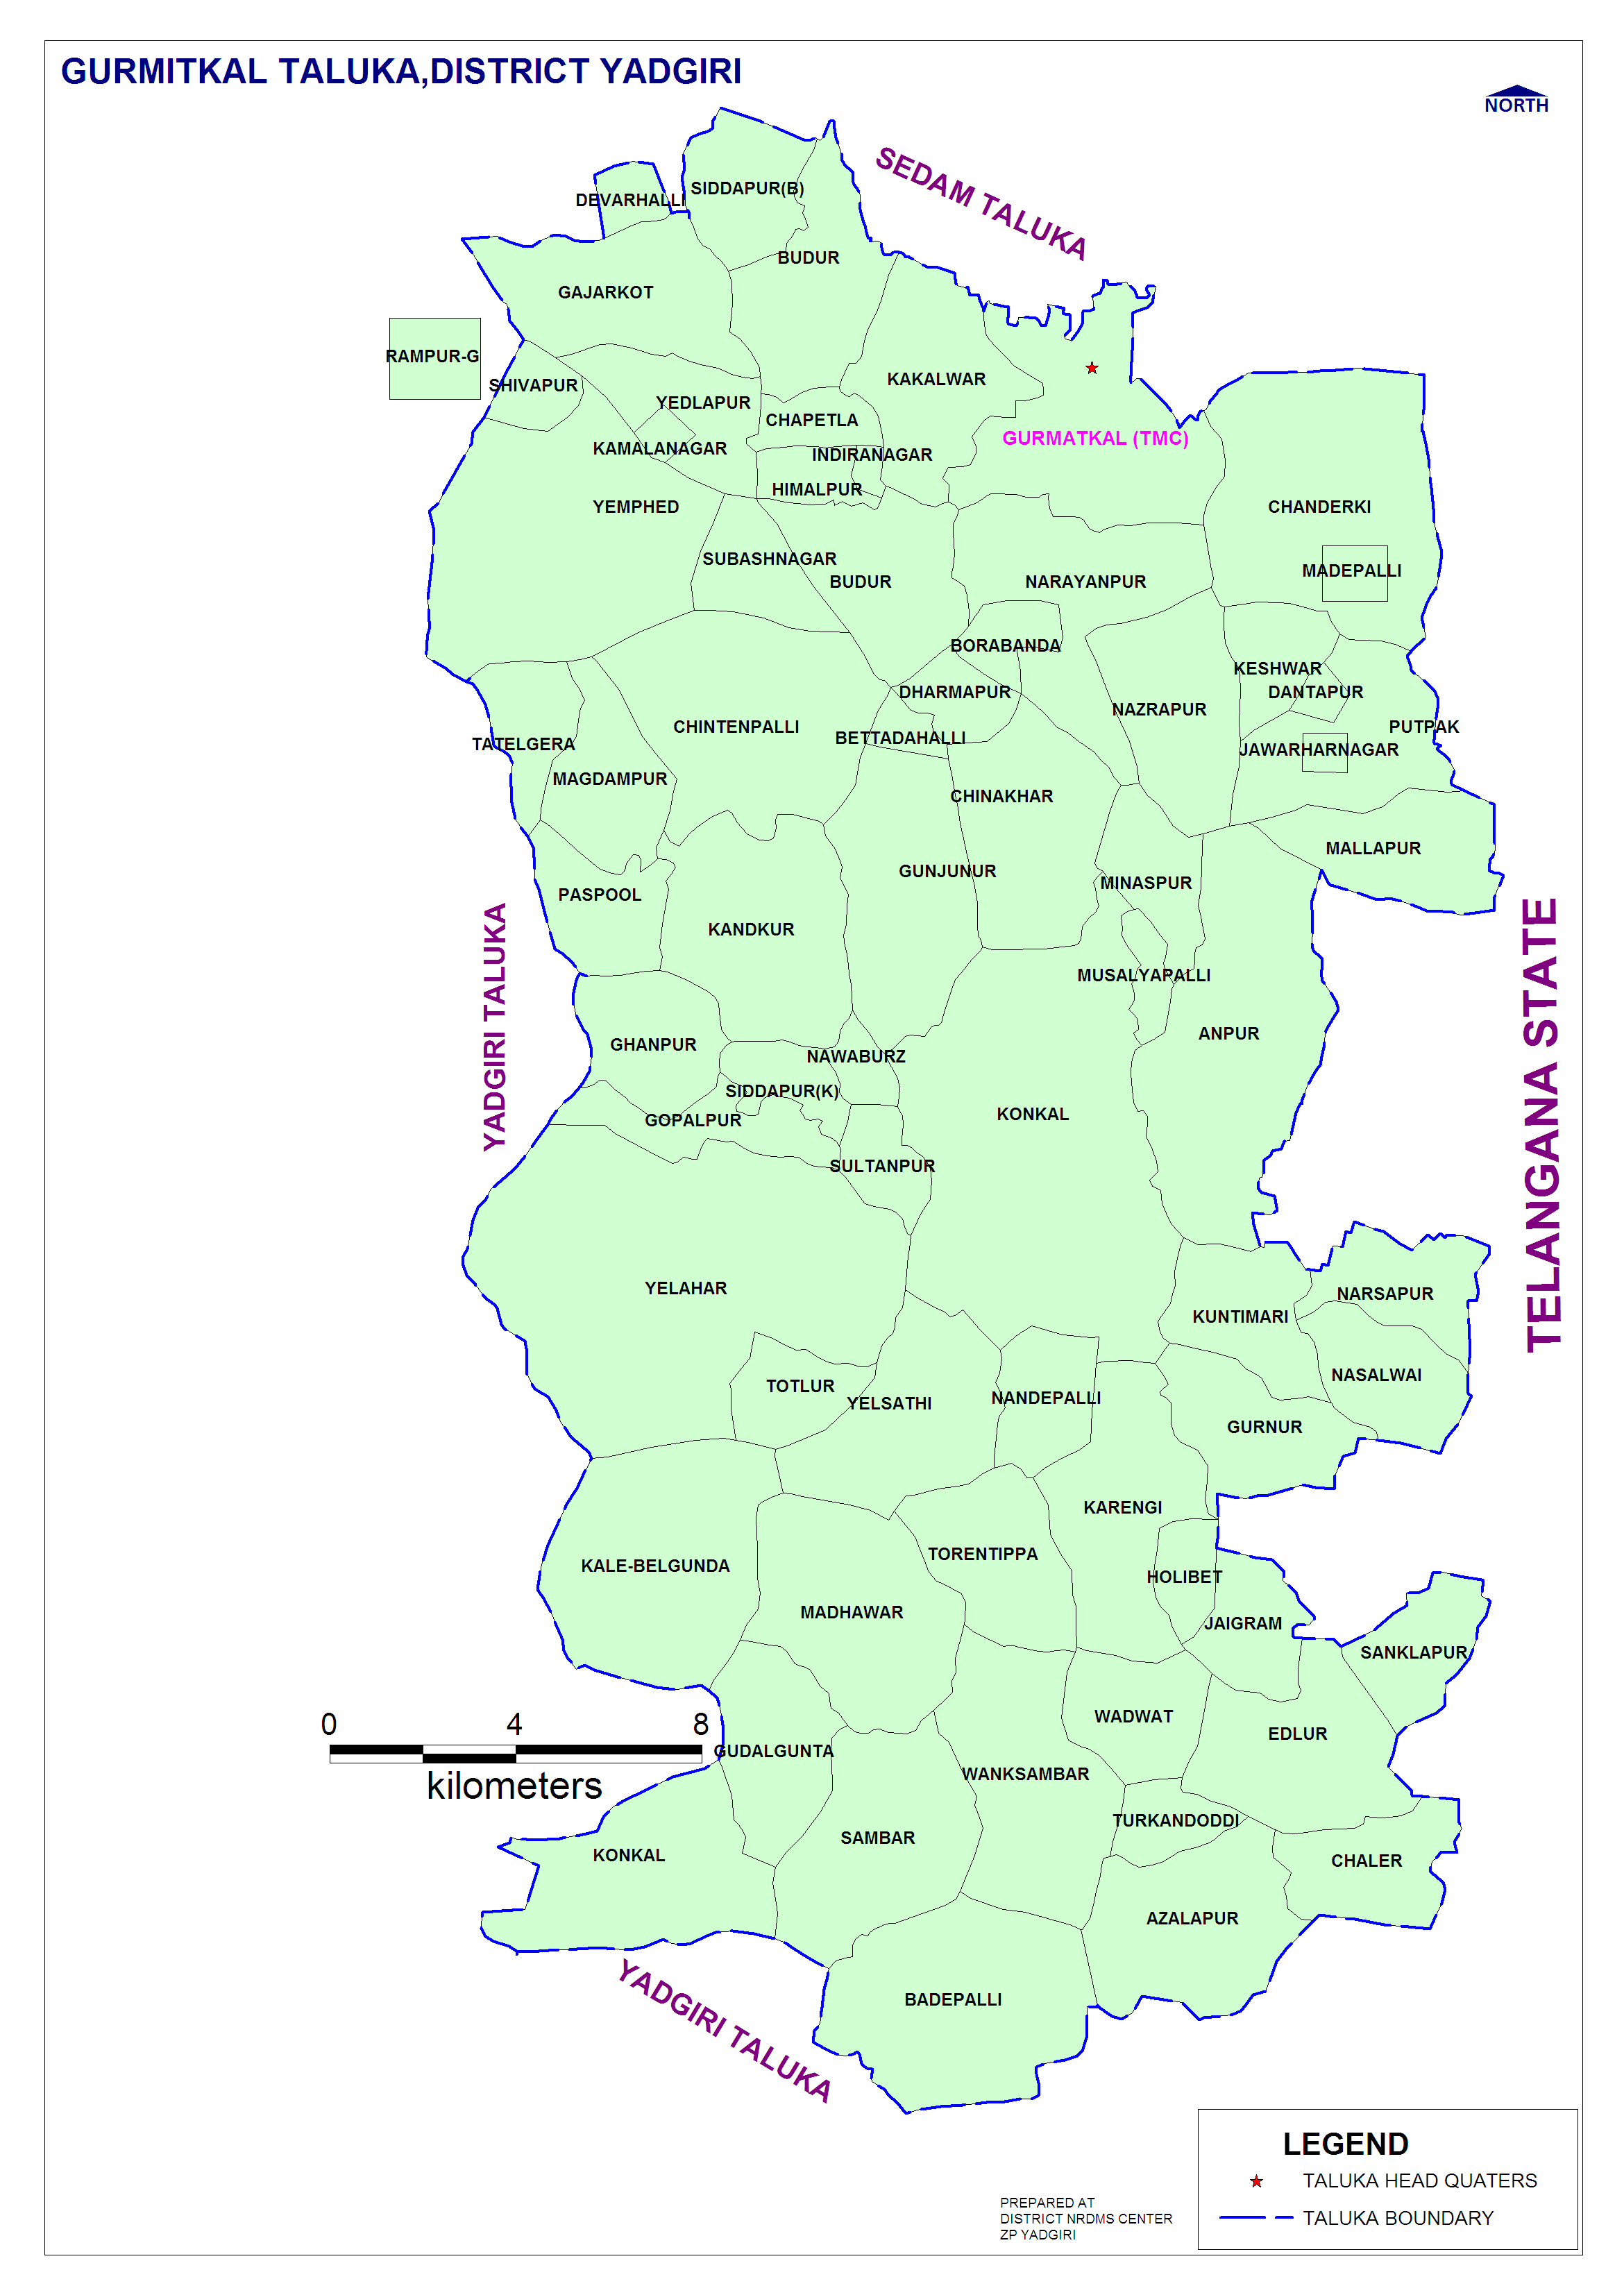 Karnataka Map on andhra pradesh map, sri lanka map, m.p. map, gujarat map, union territory map, maharashtra map, bangalore map, haryana map, telangana map, uttar pradesh map, west bengal map, tamilnadu map, uttarakhand map, kashmir map, kerala map, goa map, india map, delhi map, pondicherry map, rajasthan map,